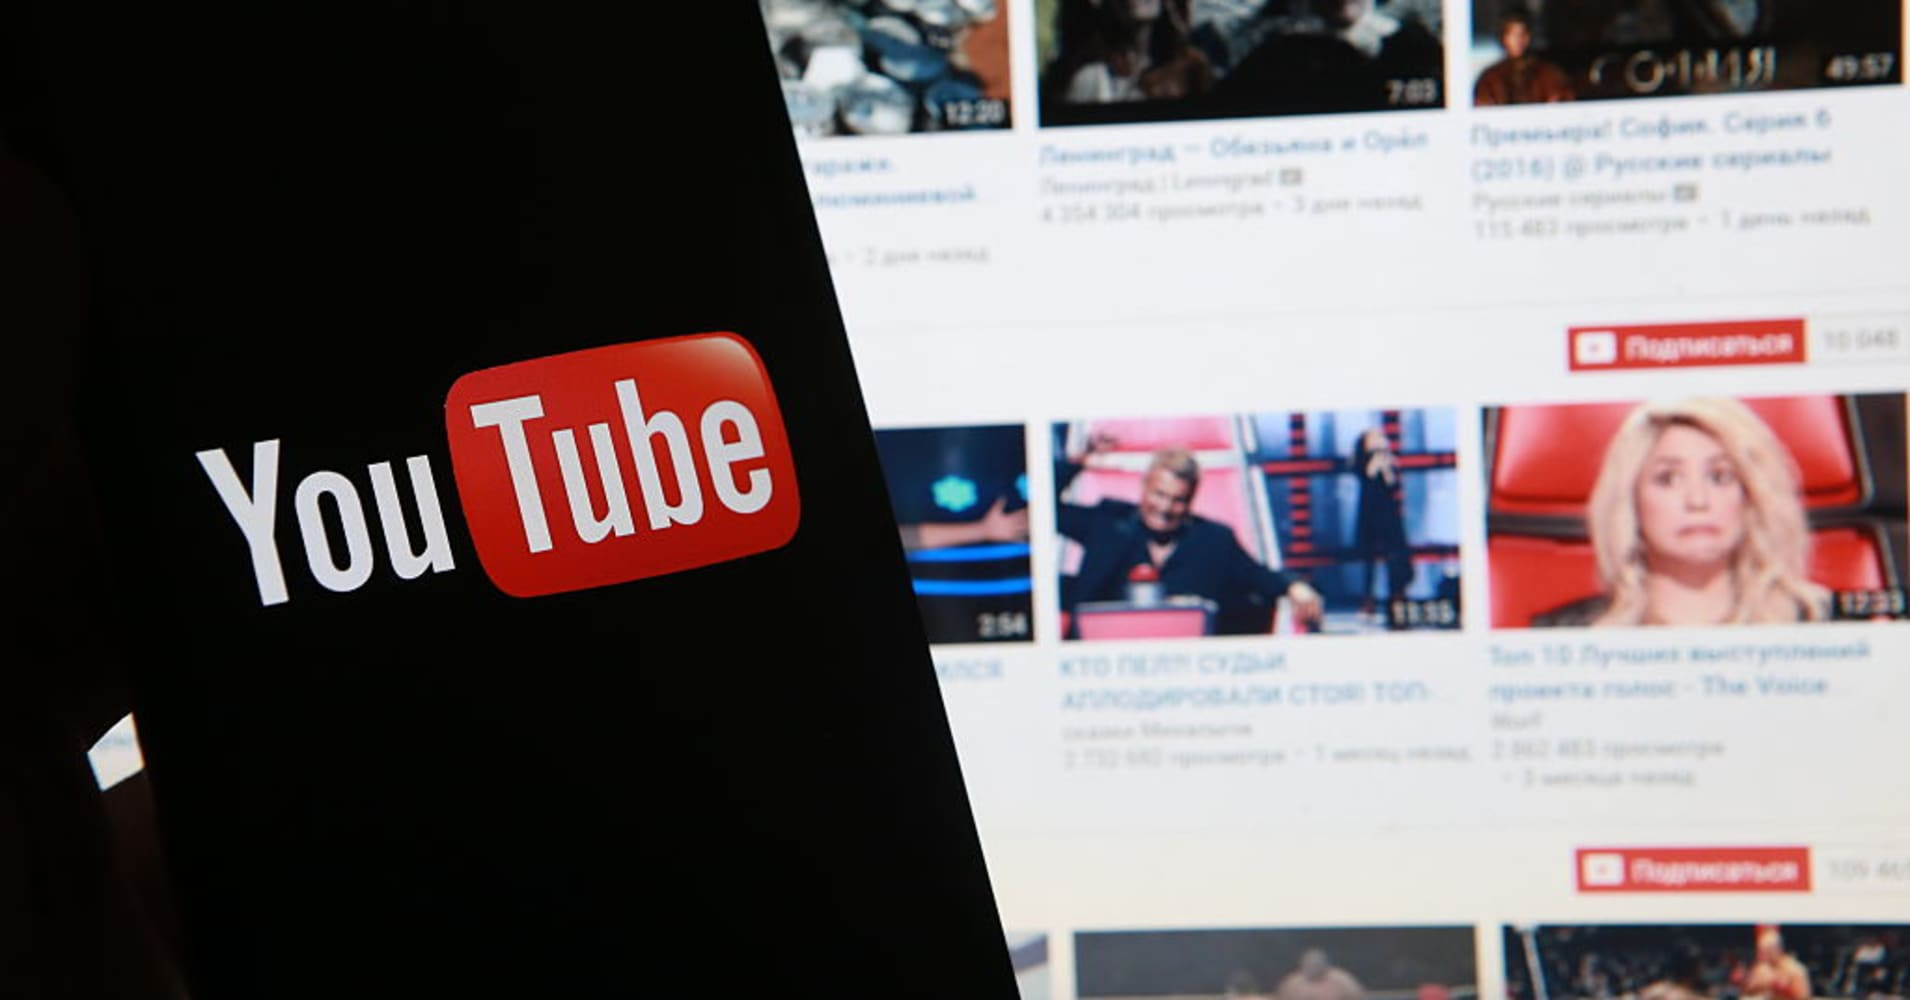 Five of YouTube's biggest markets in the world are in Asia